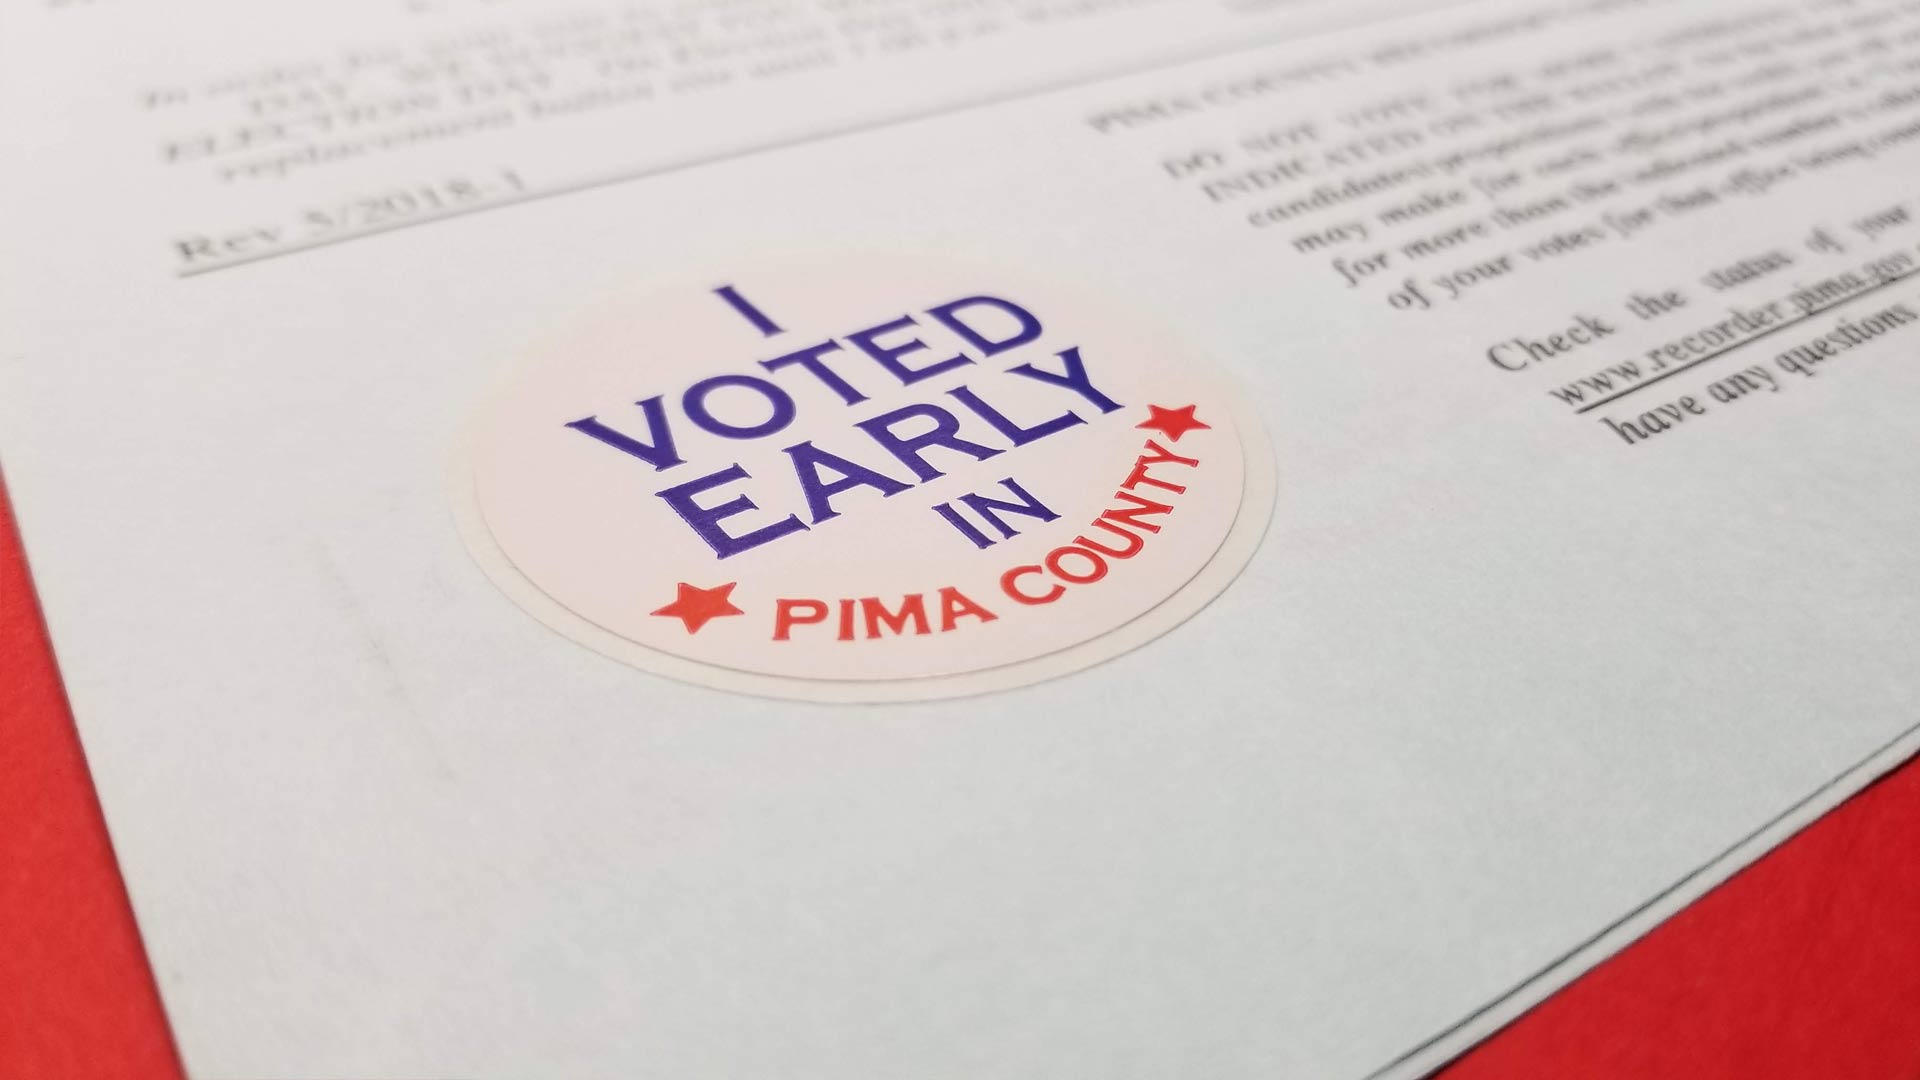 I Voted Early Pima County button